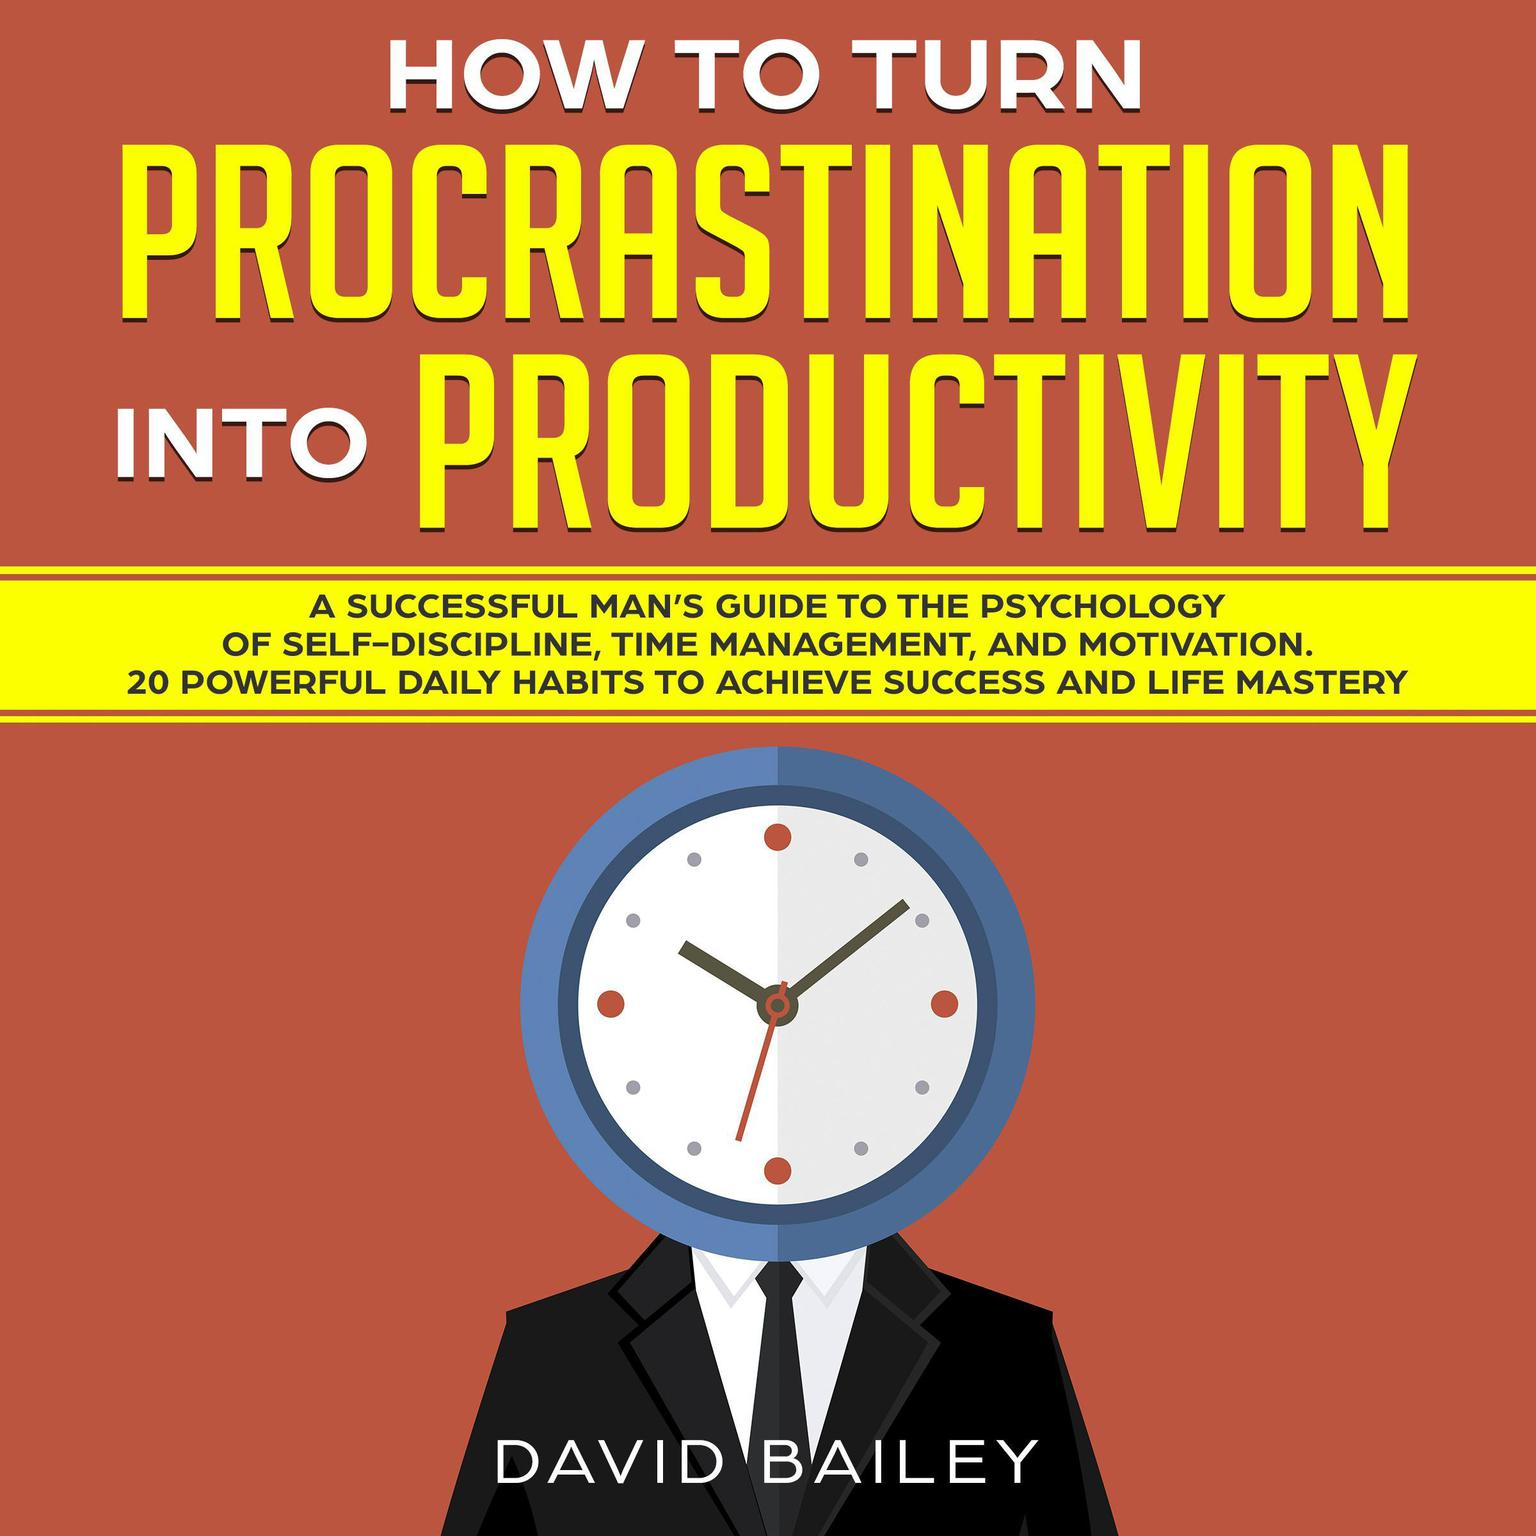 How to Turn Procrastination into Productivity: A Successful Man's Guide to the Psychology of Self-Discipline, Time Management, and Motivation + 20 Powerful Daily Habits to Achieve Success and Mastery Audiobook, by David Bailey